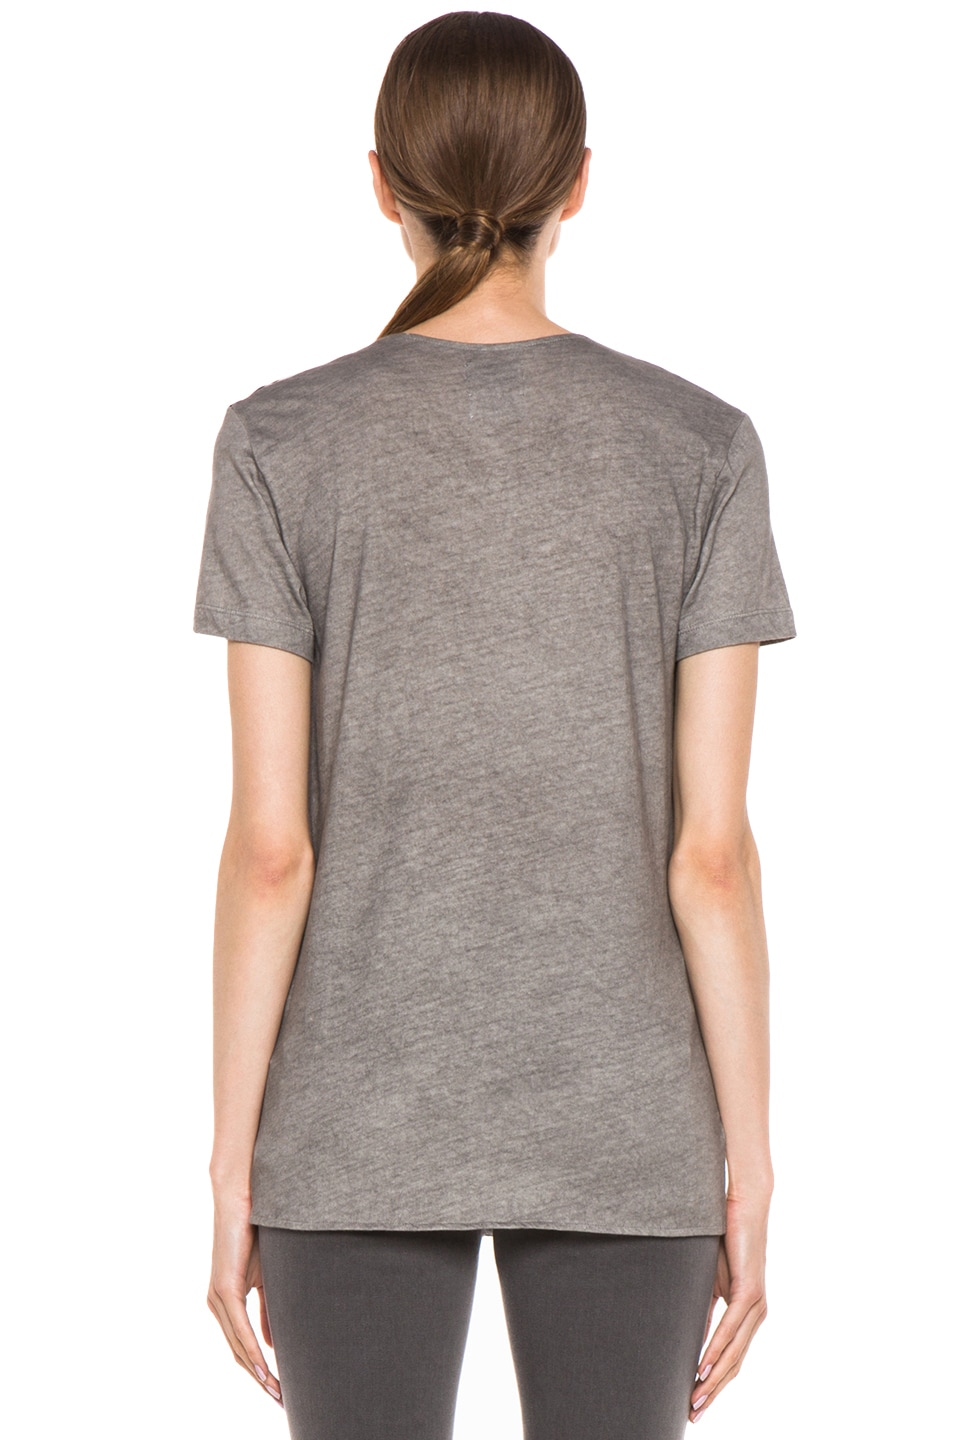 Image 4 of EACH x OTHER By Thomas Lelu Unique 'Want to Get High' Tee in Grey